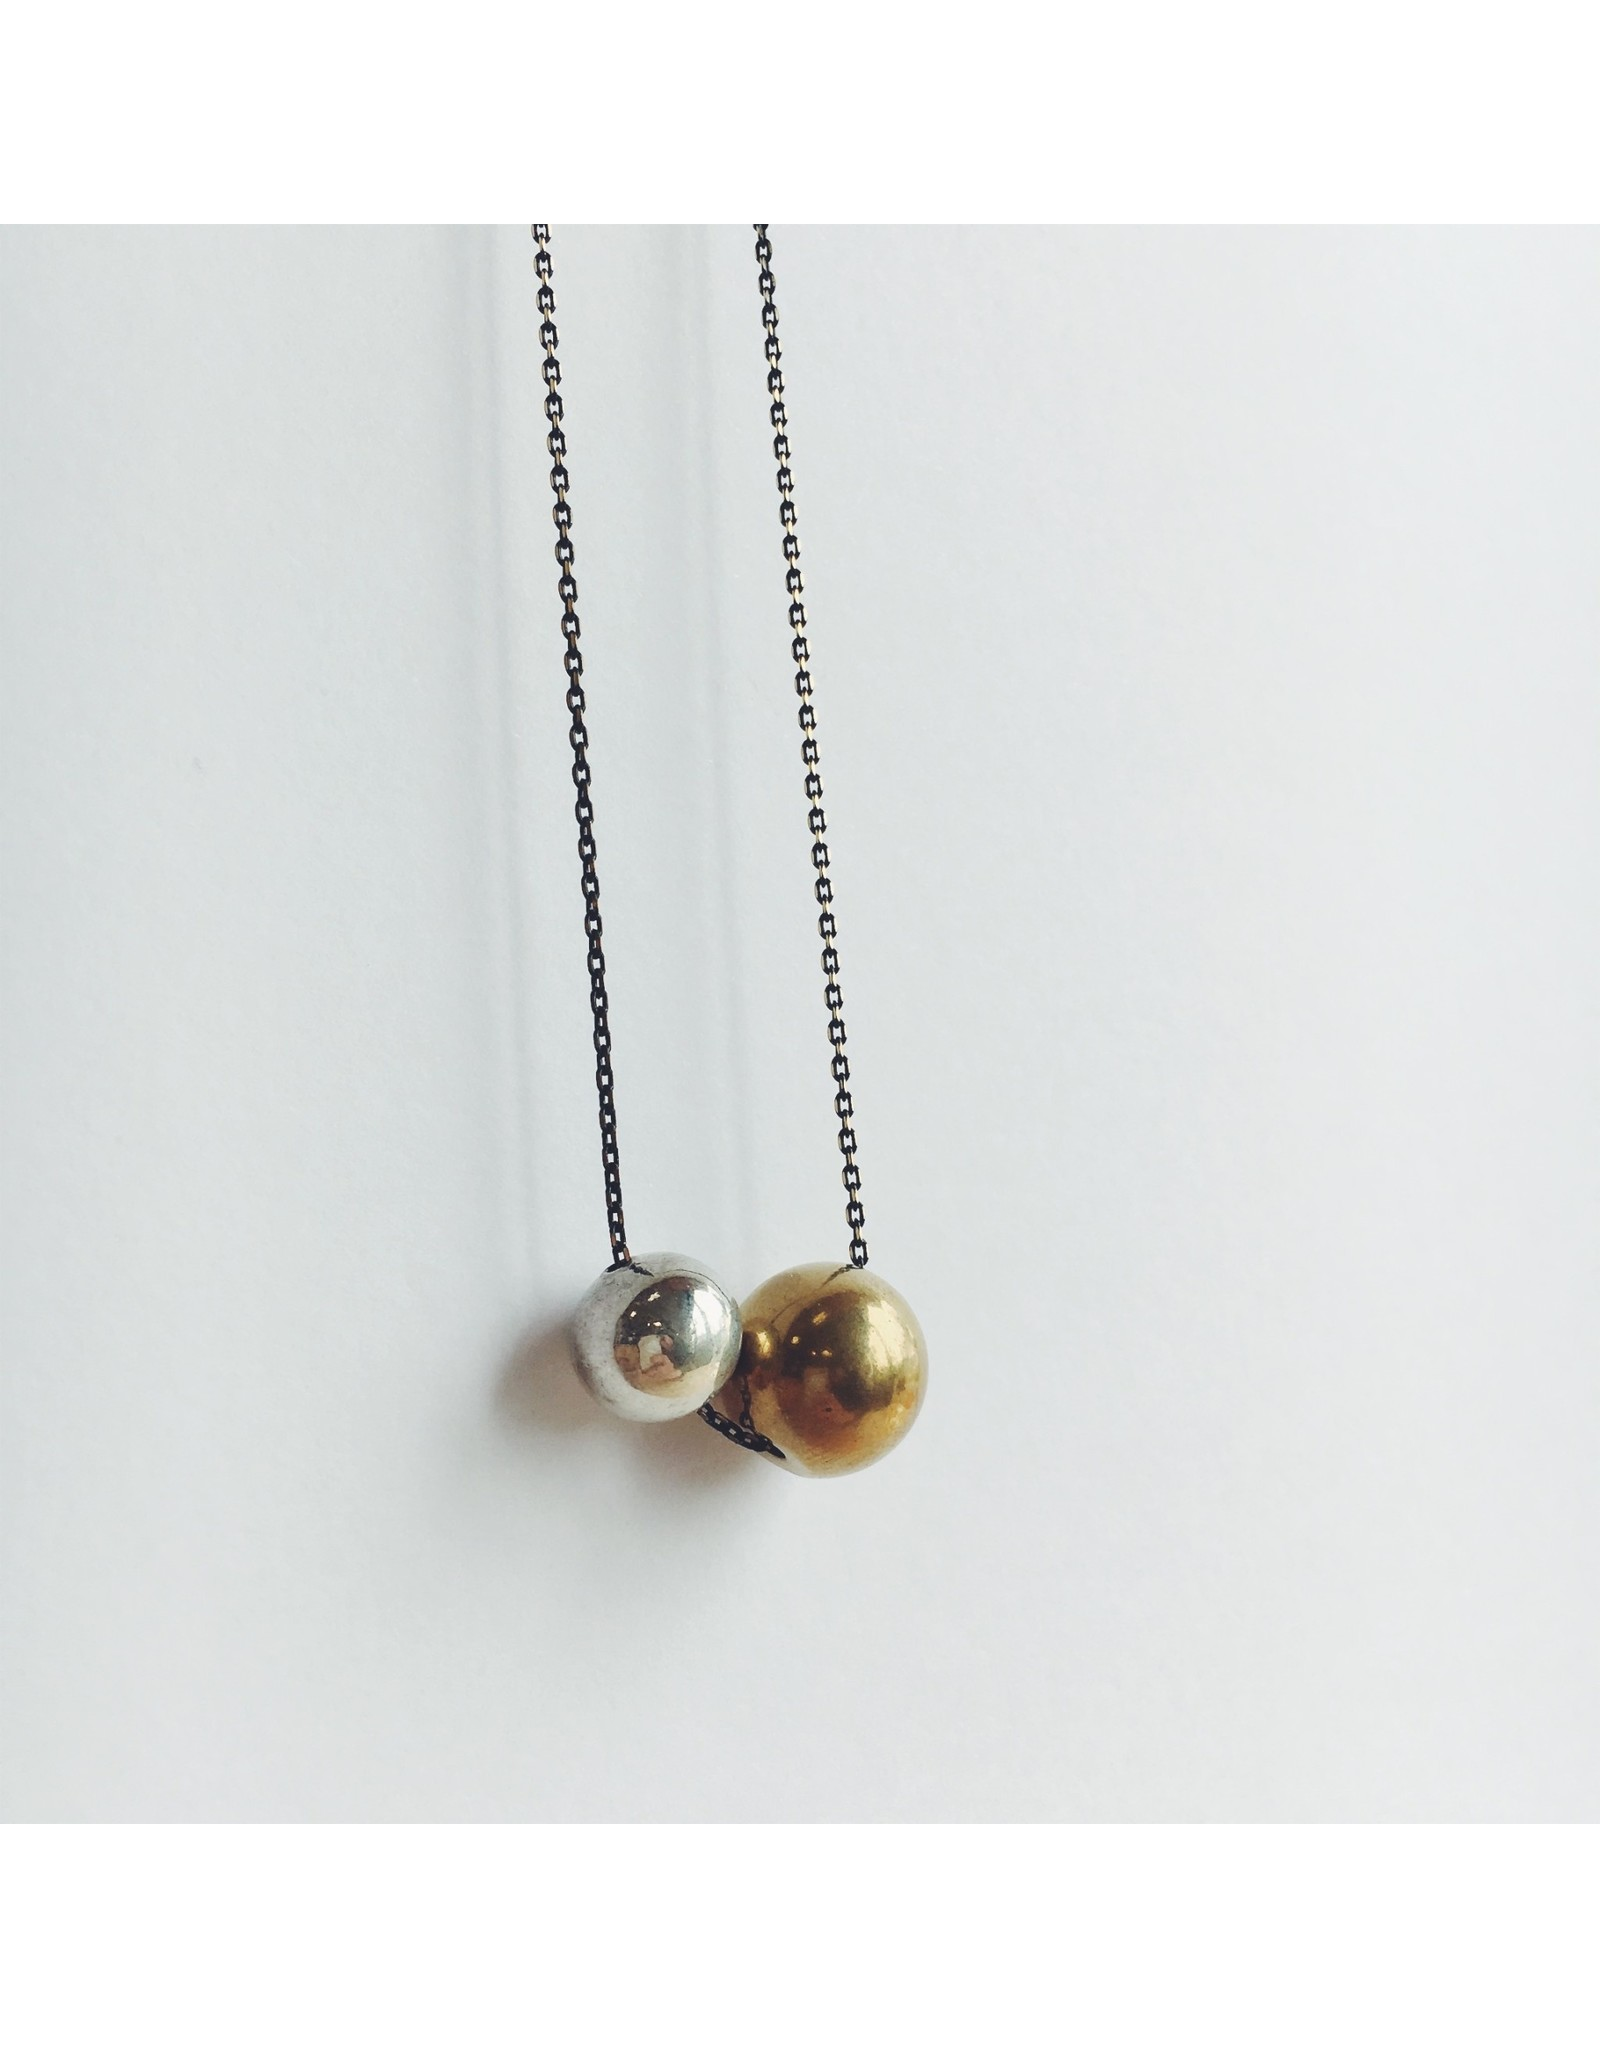 Solid Brass Bead with Chrome Bead Necklace